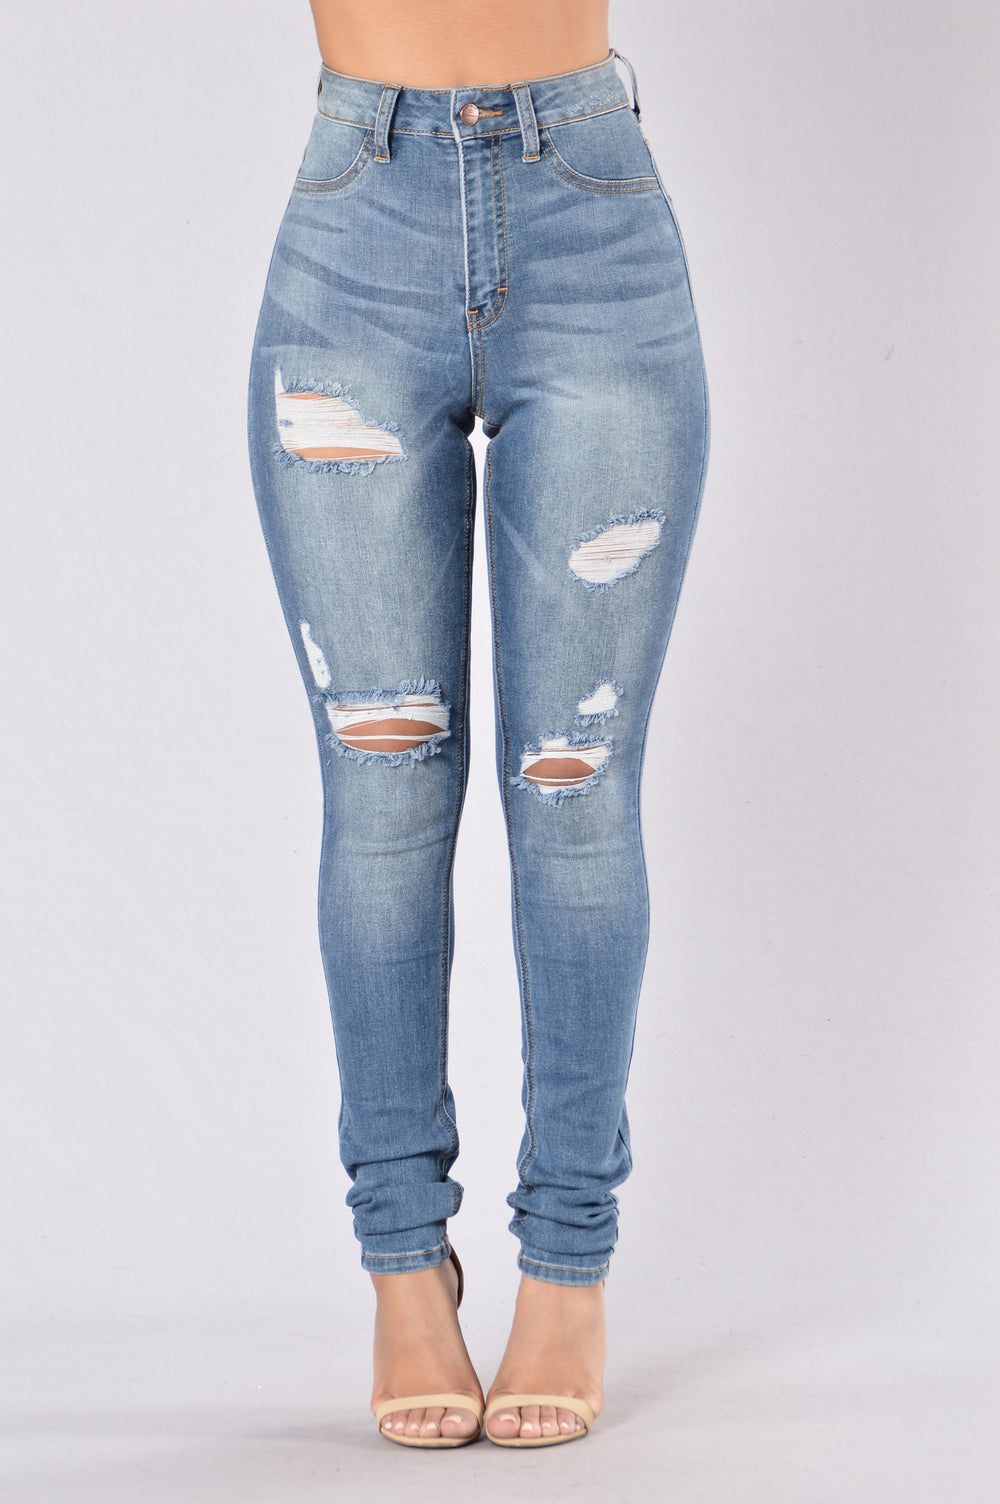 Find great deals on eBay for ripped light blue jeans. Shop with confidence.